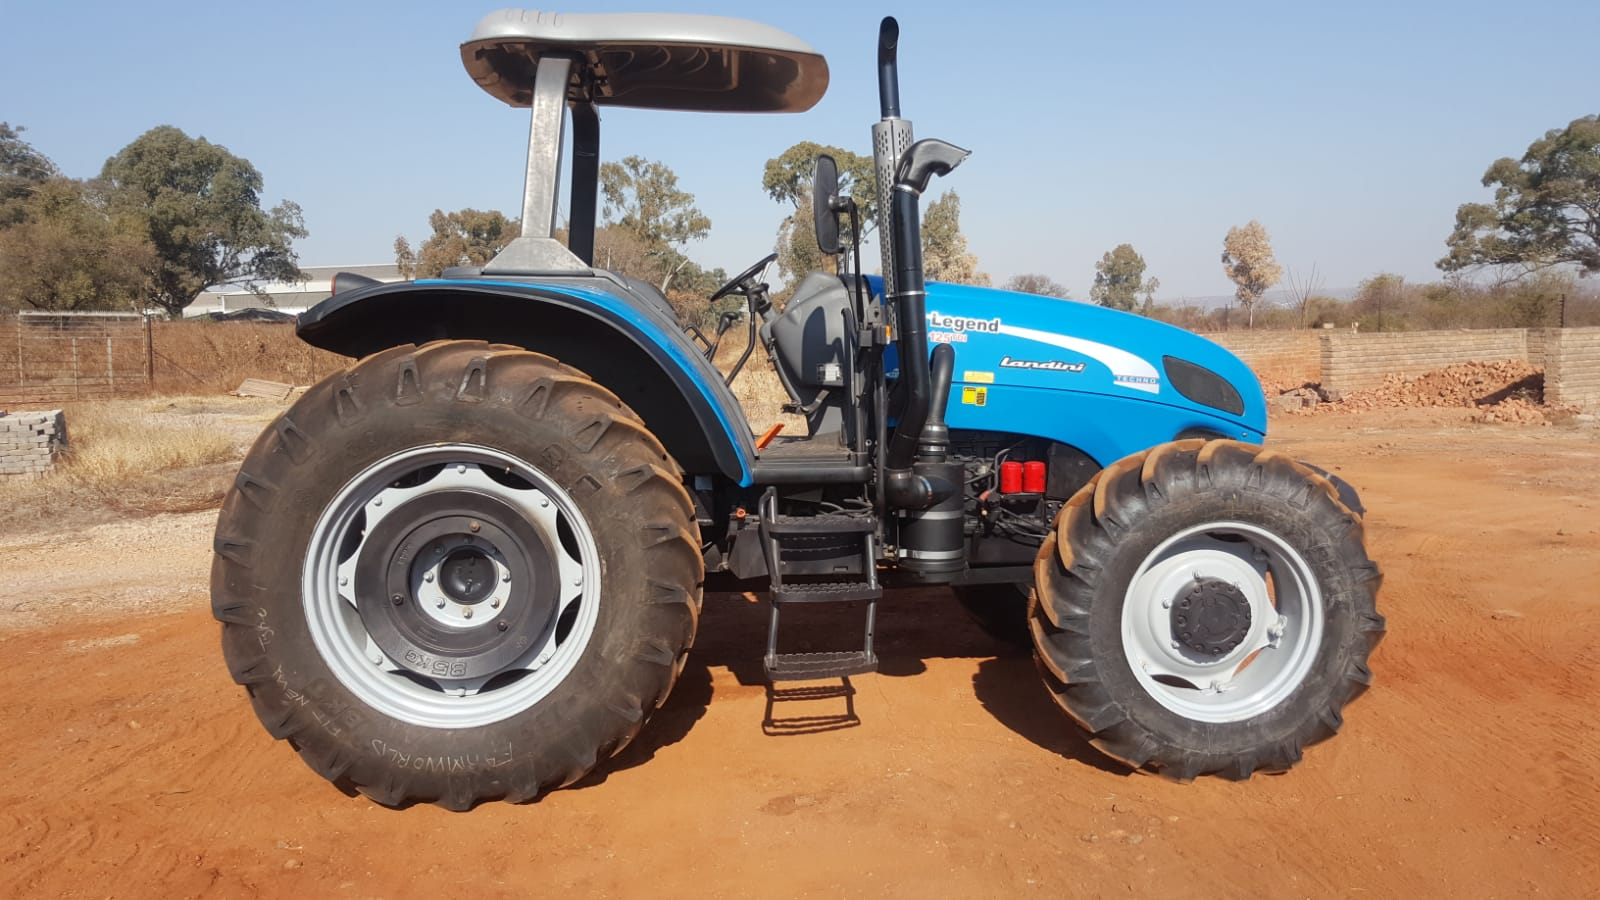 2009 Landini Legend Tractor 4x4 For Sale 125 Horse Power